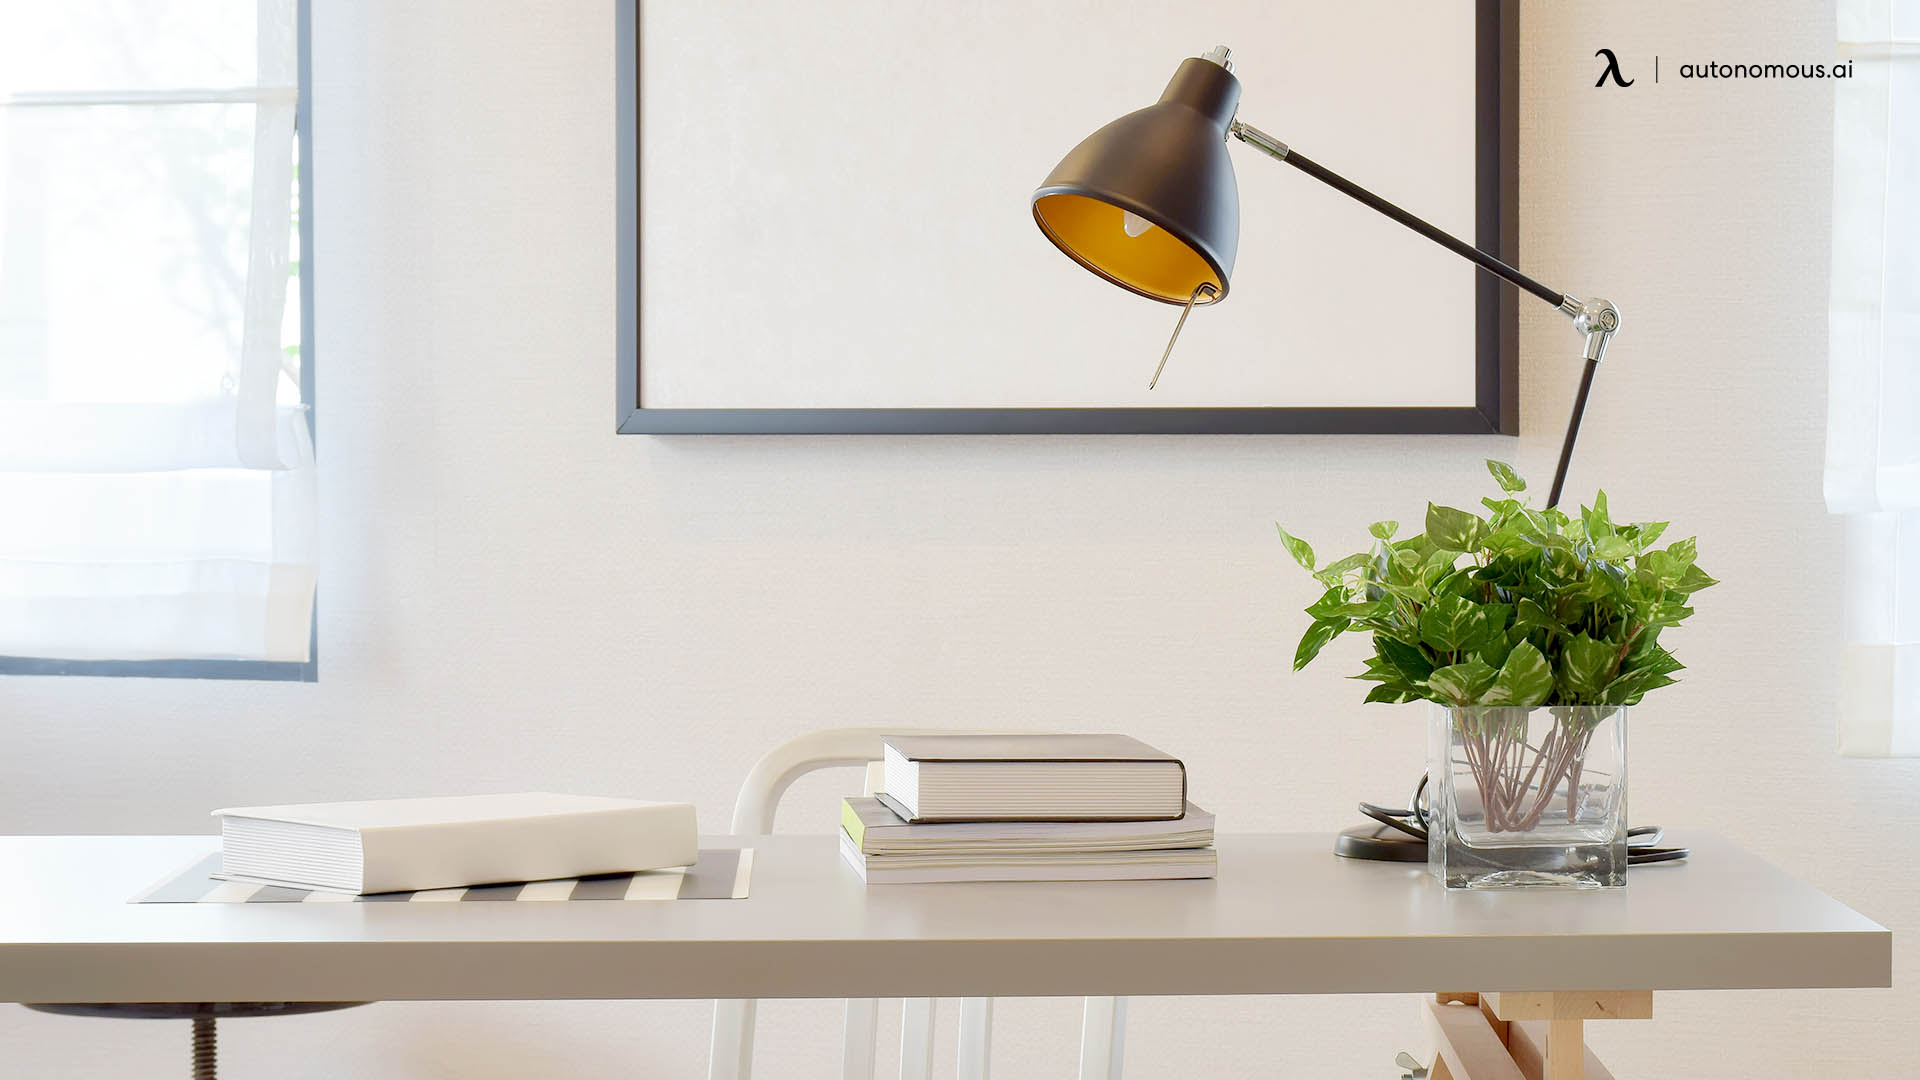 Recessed Lighting Might Be for You